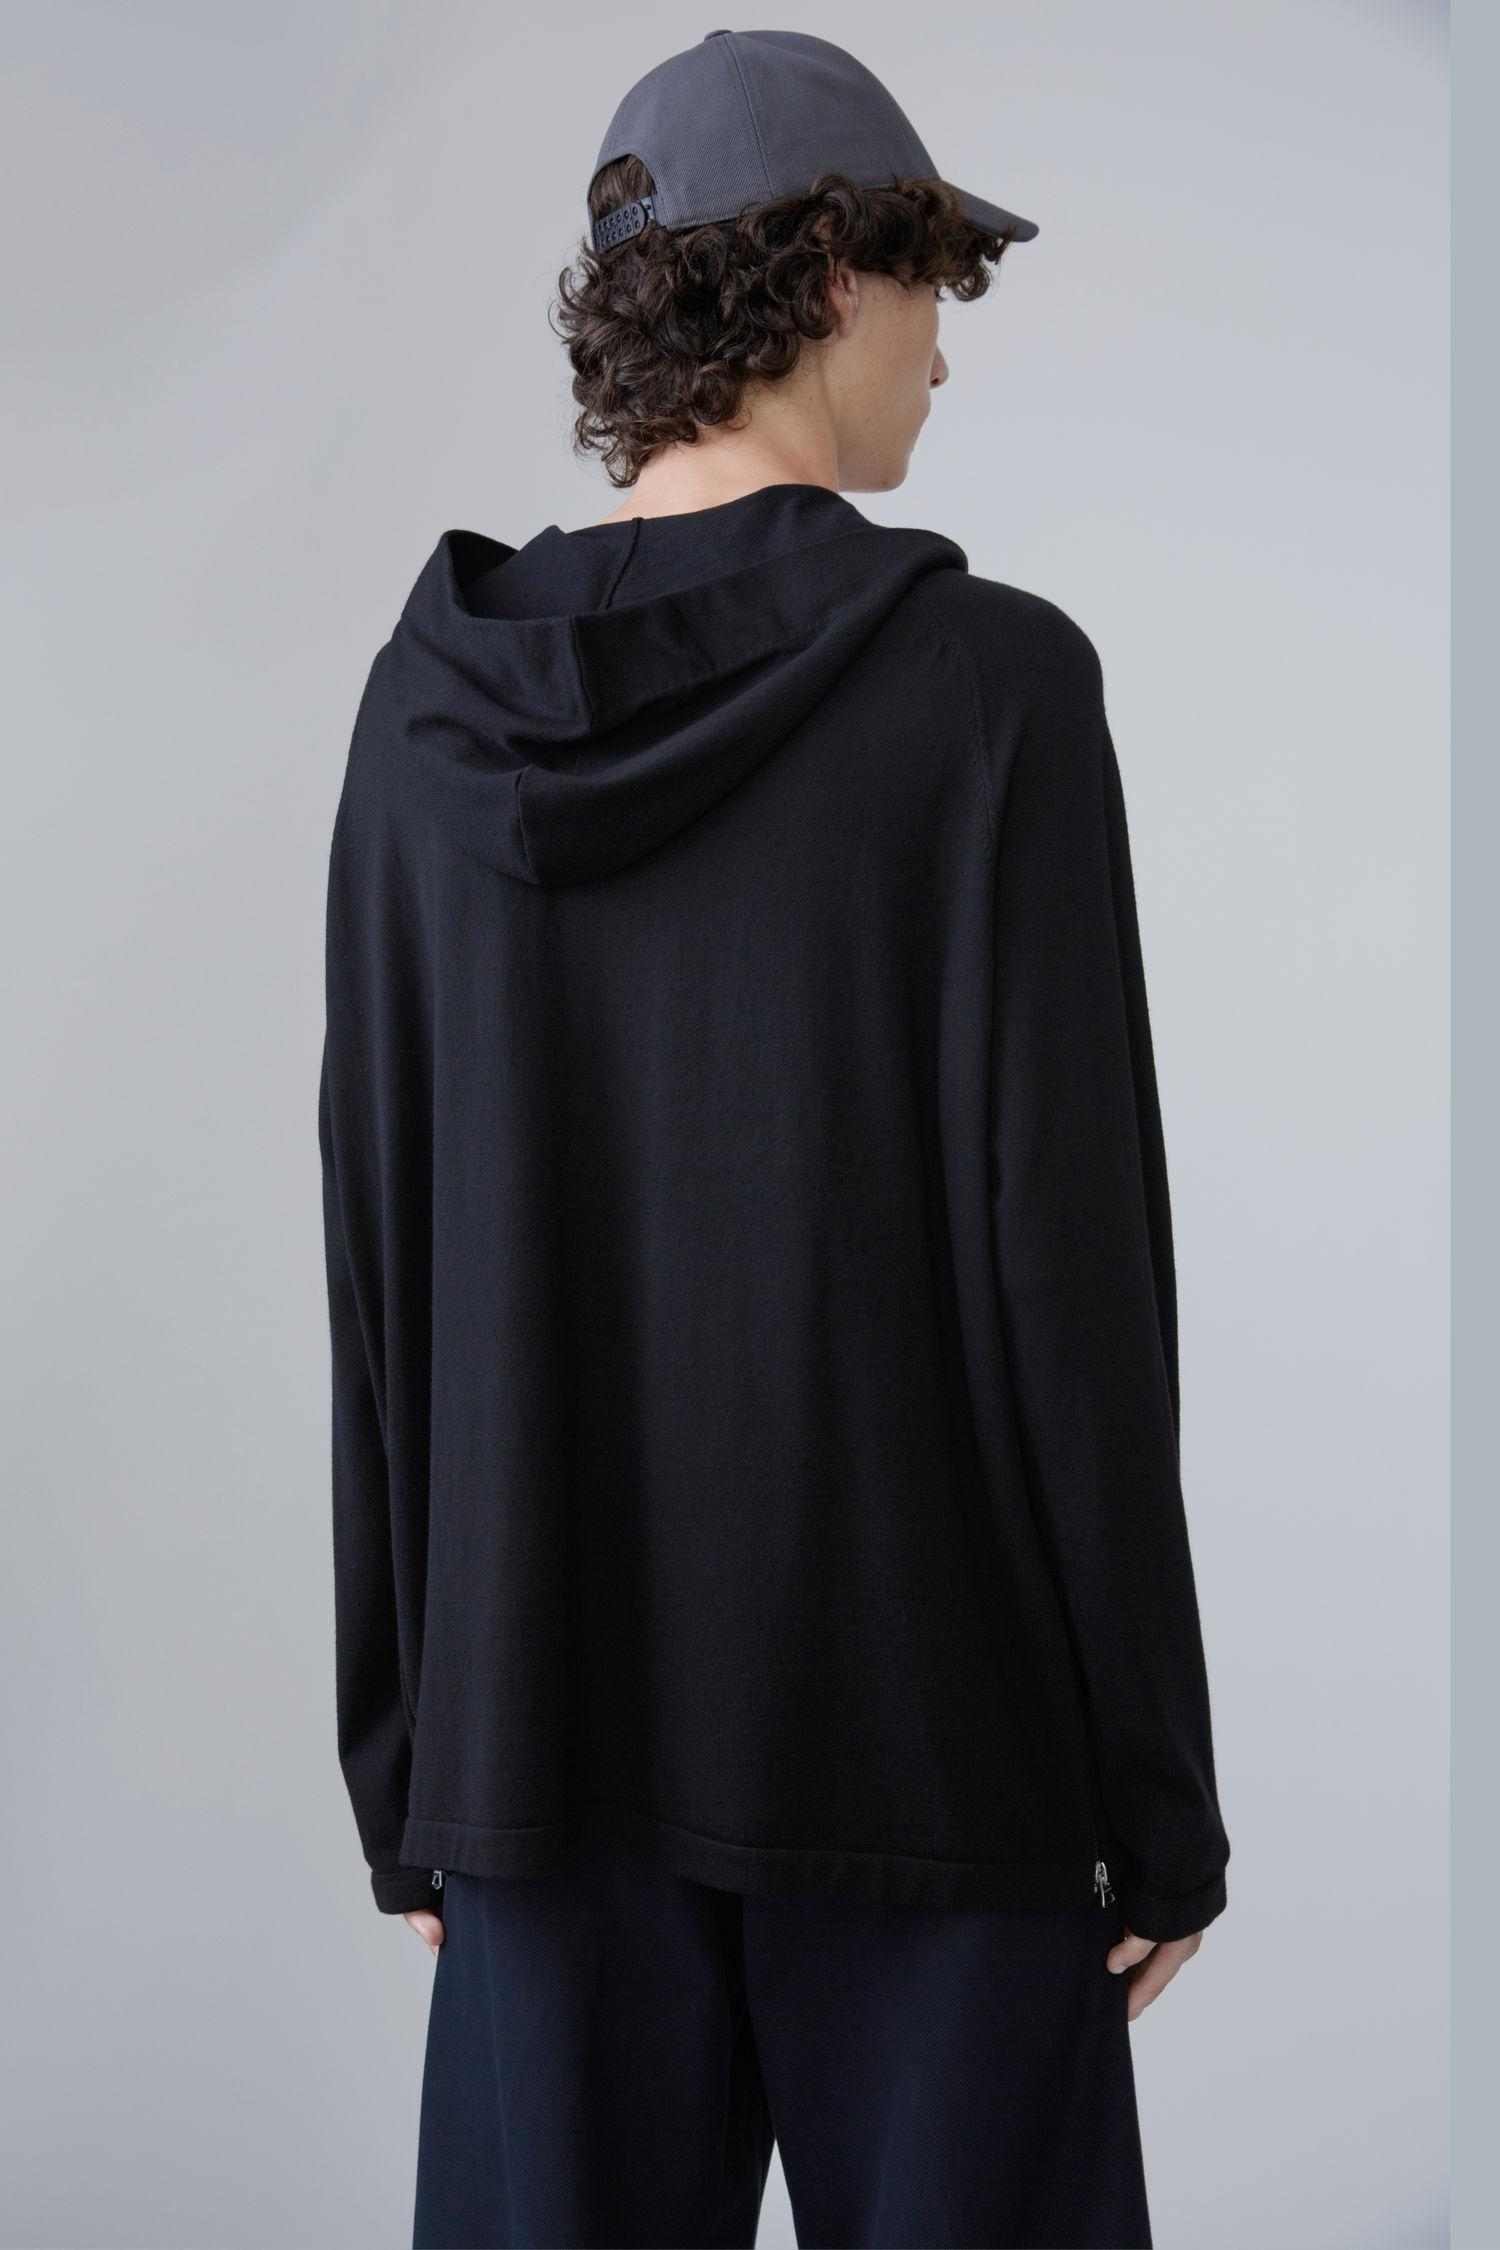 Lyst - Acne Studios Kabel in Black for Men